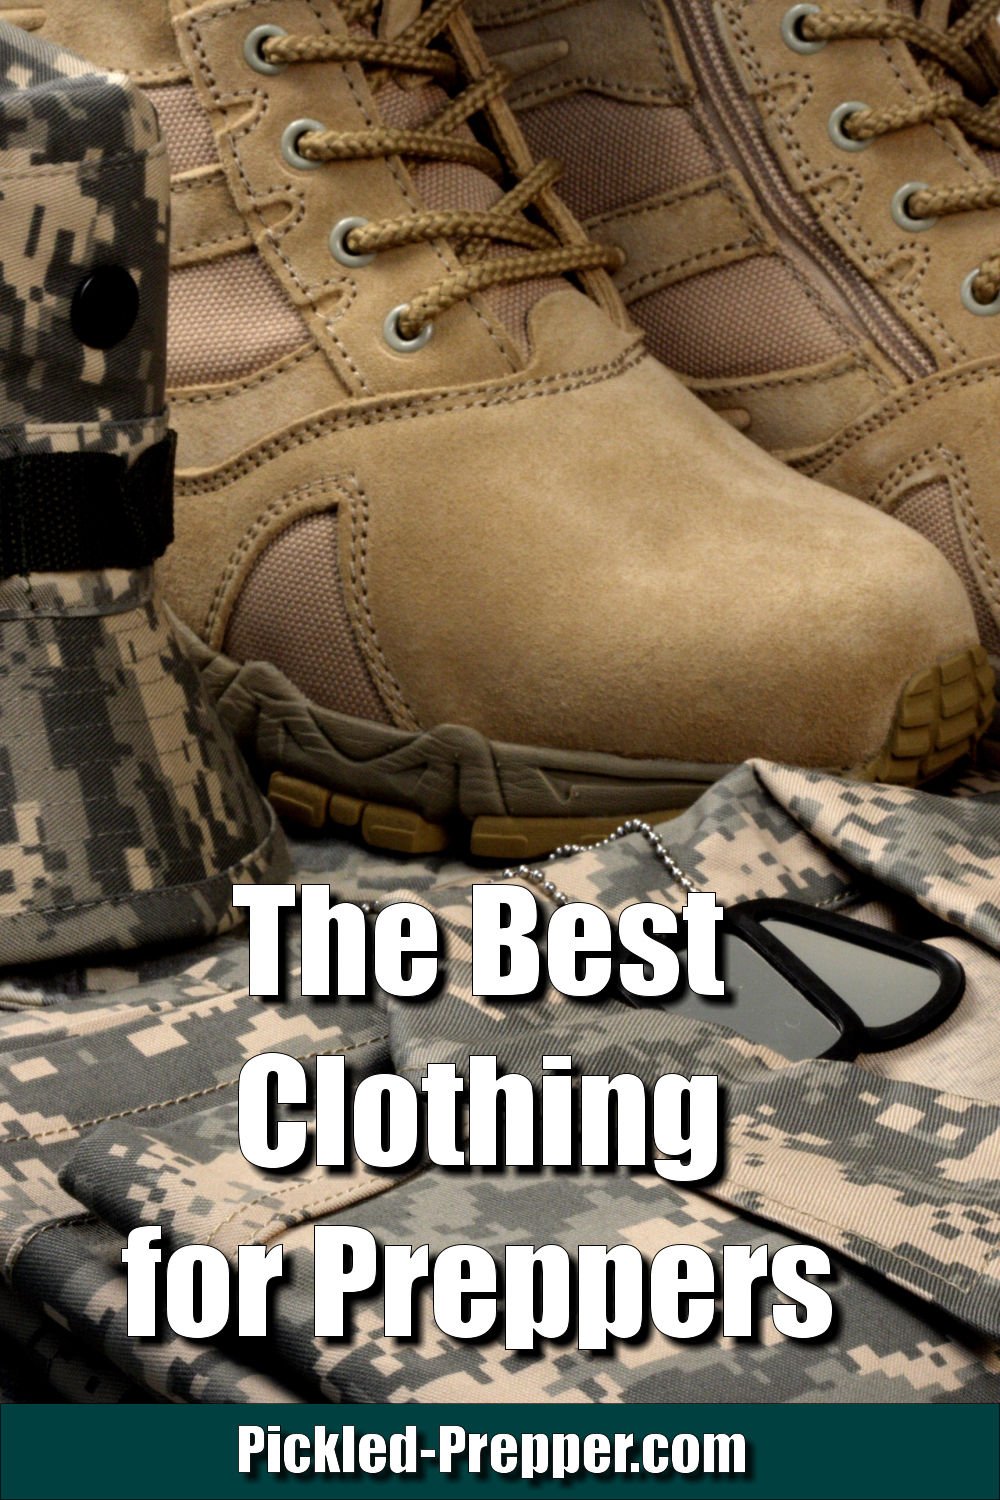 October 3: The Best Clothing for Preppers